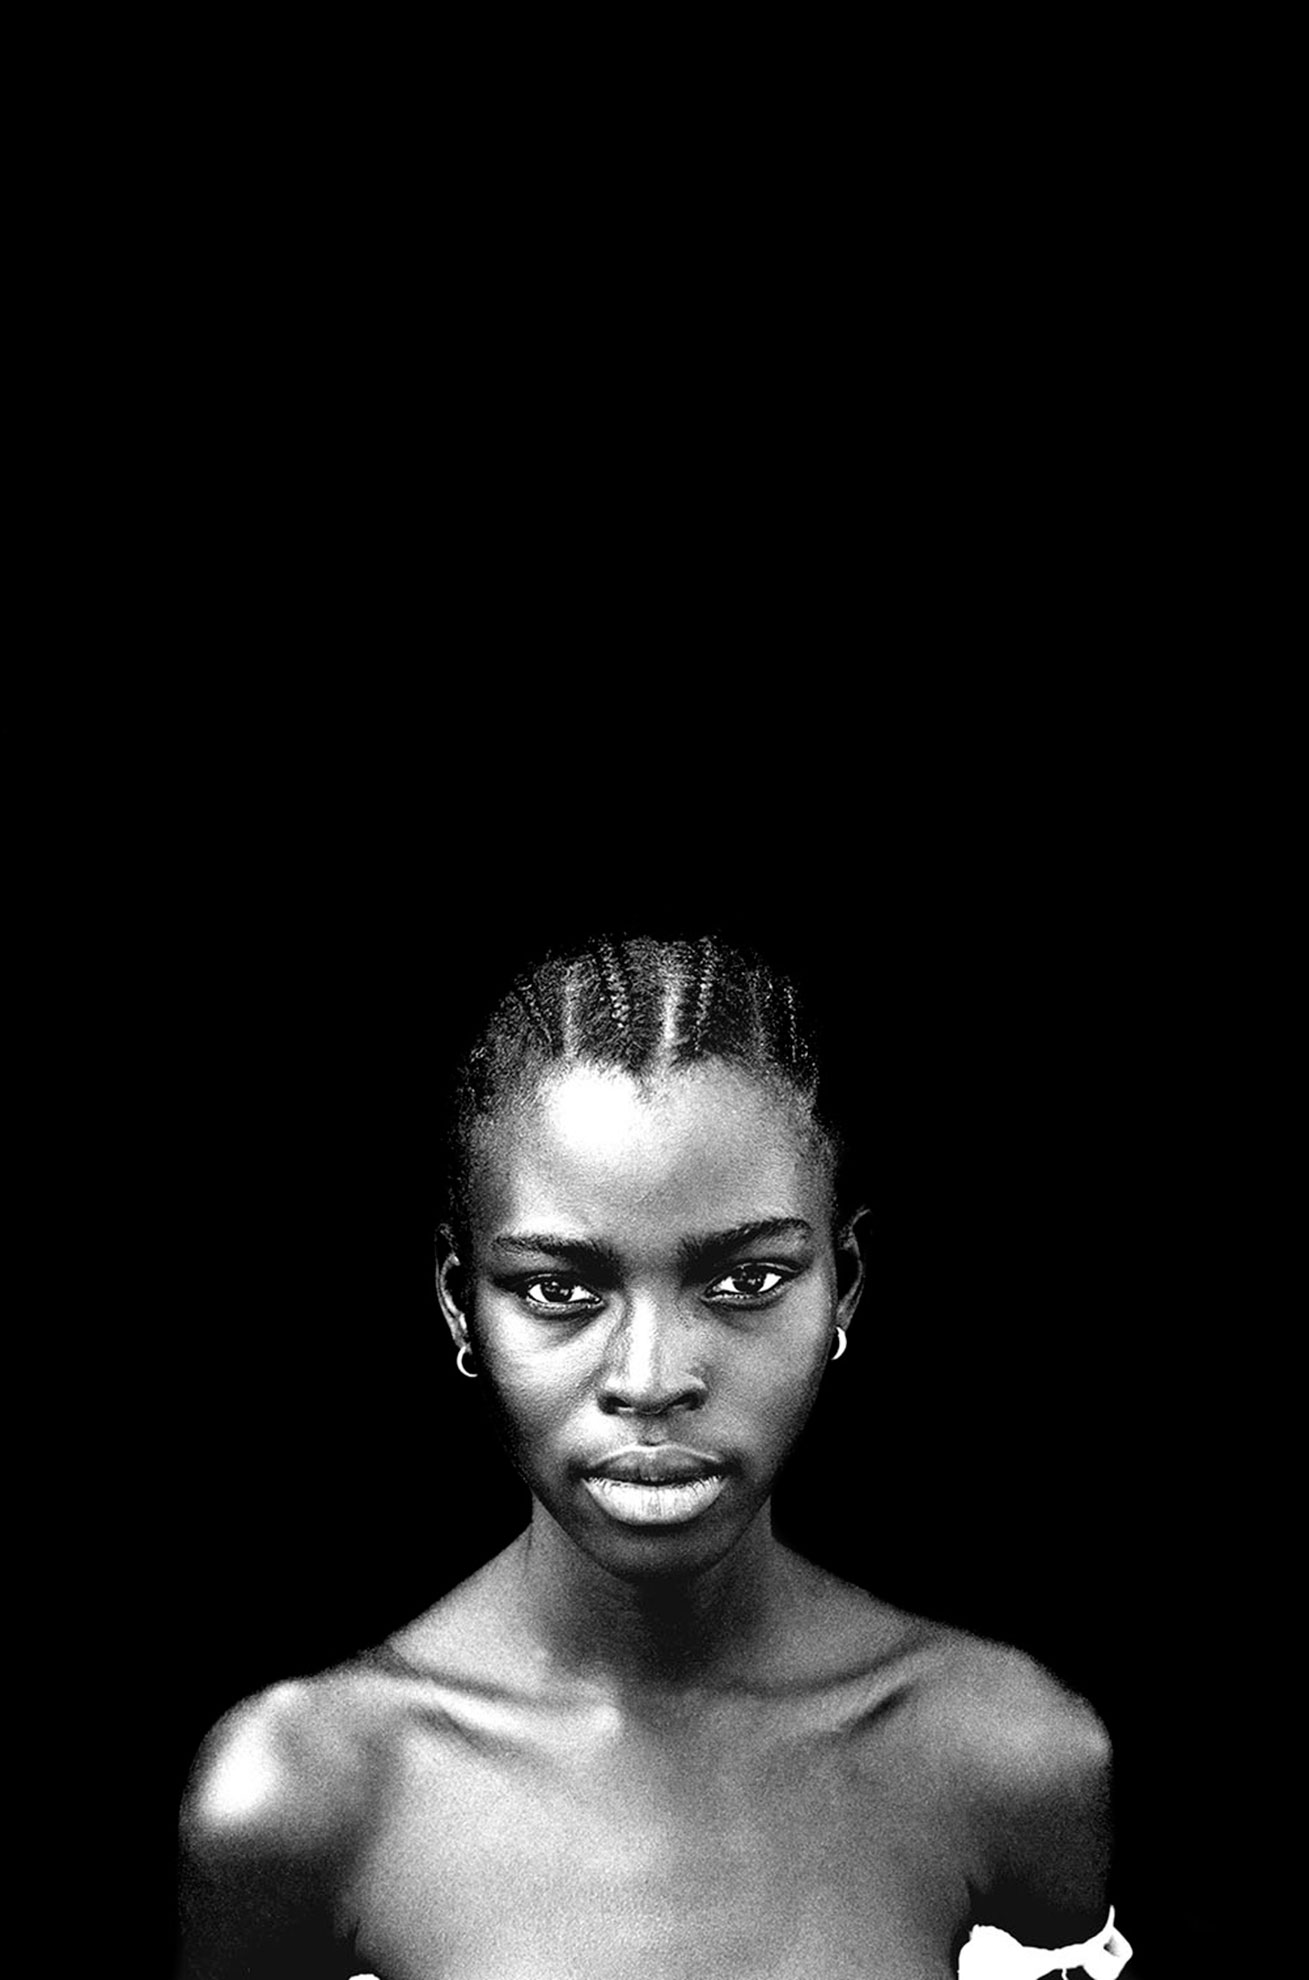 The black backdrop - 'Ida' student, The Gambia, West Africa © Jason Florio. BW portrait of young girl against black background